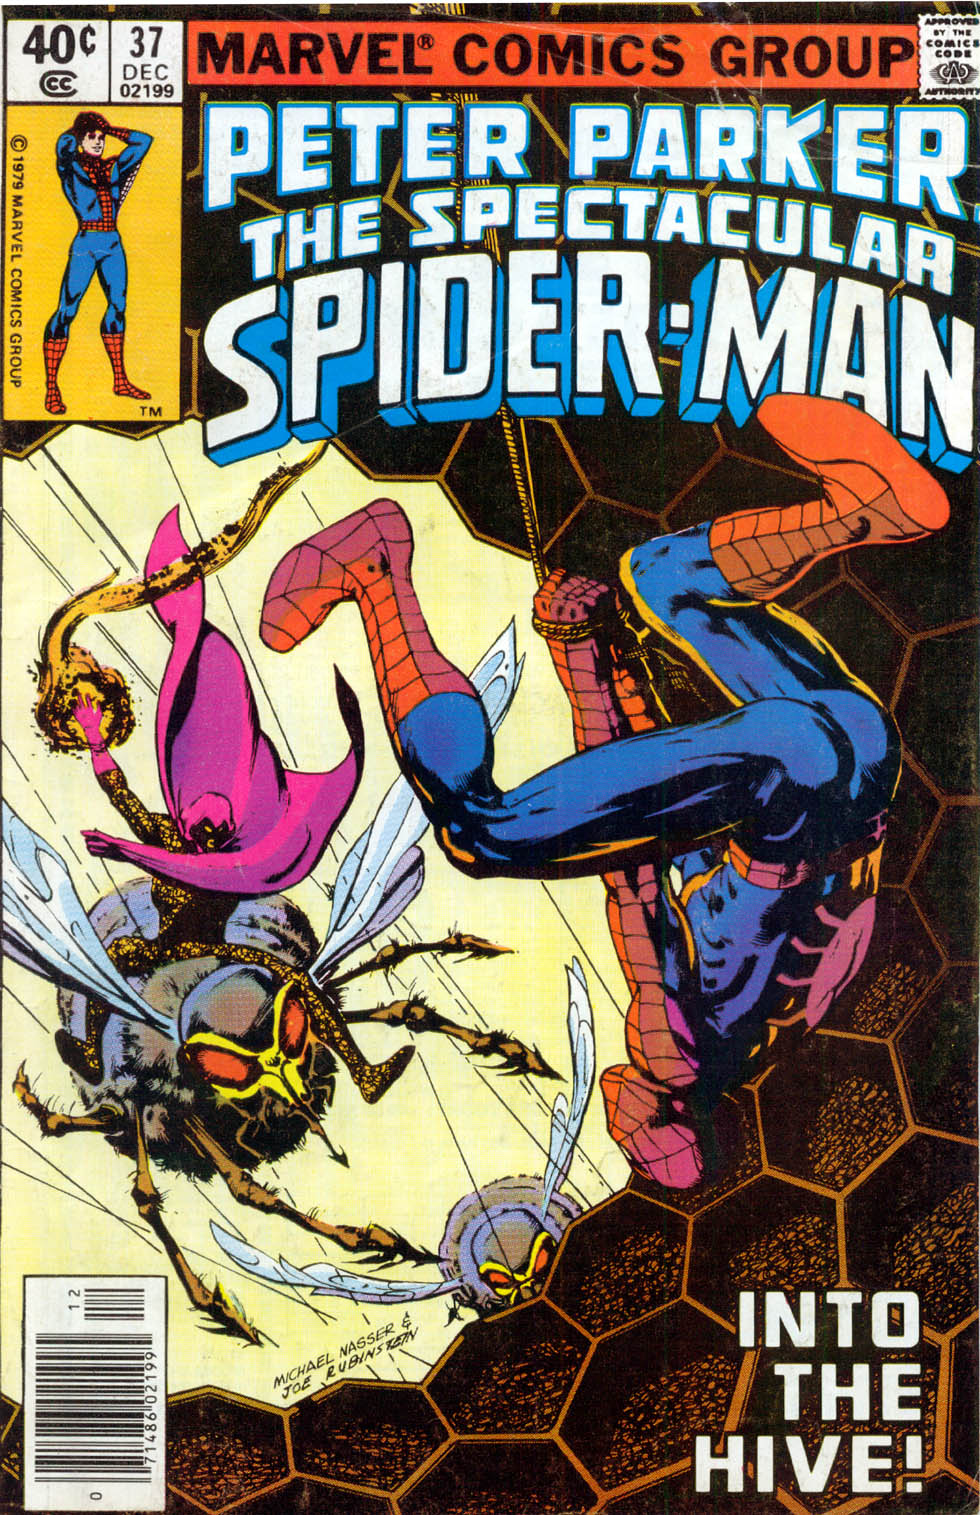 Peter Parker, the Spectacular Spider-Man (1976) #37, cover penciled by Mike Nasser & inked by Joe Rubinstein.